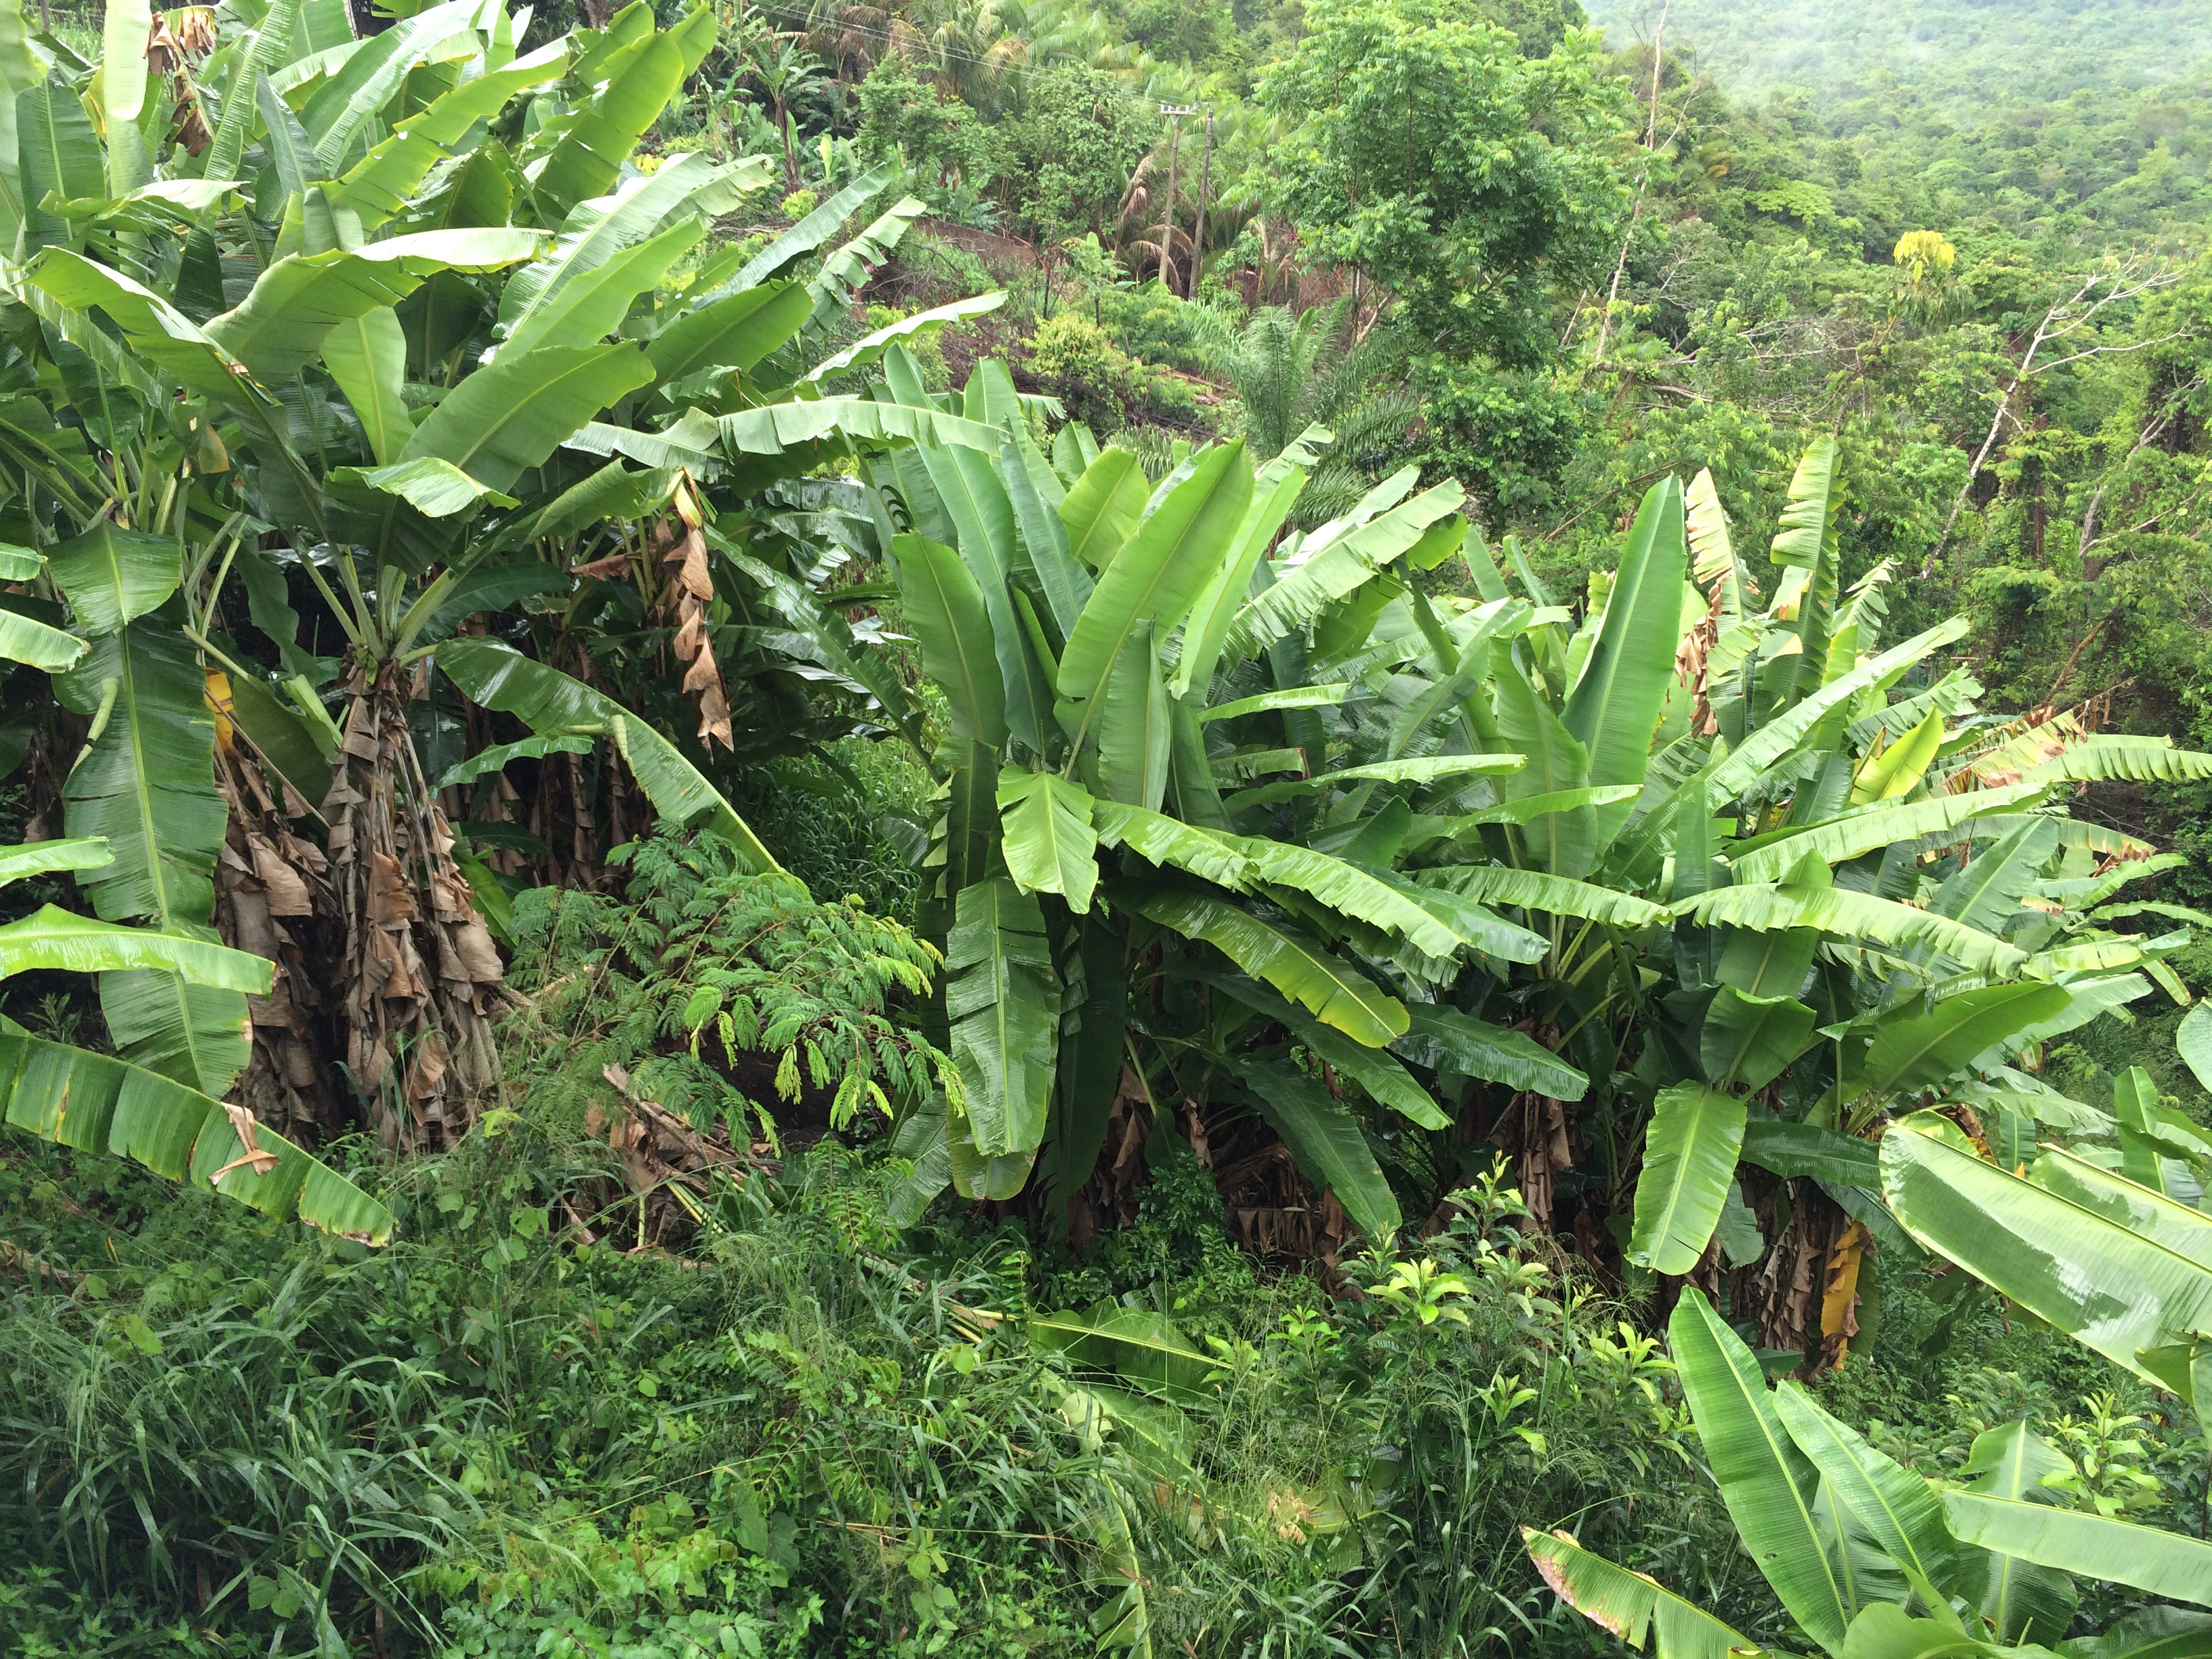 Rainforest Banana Trees